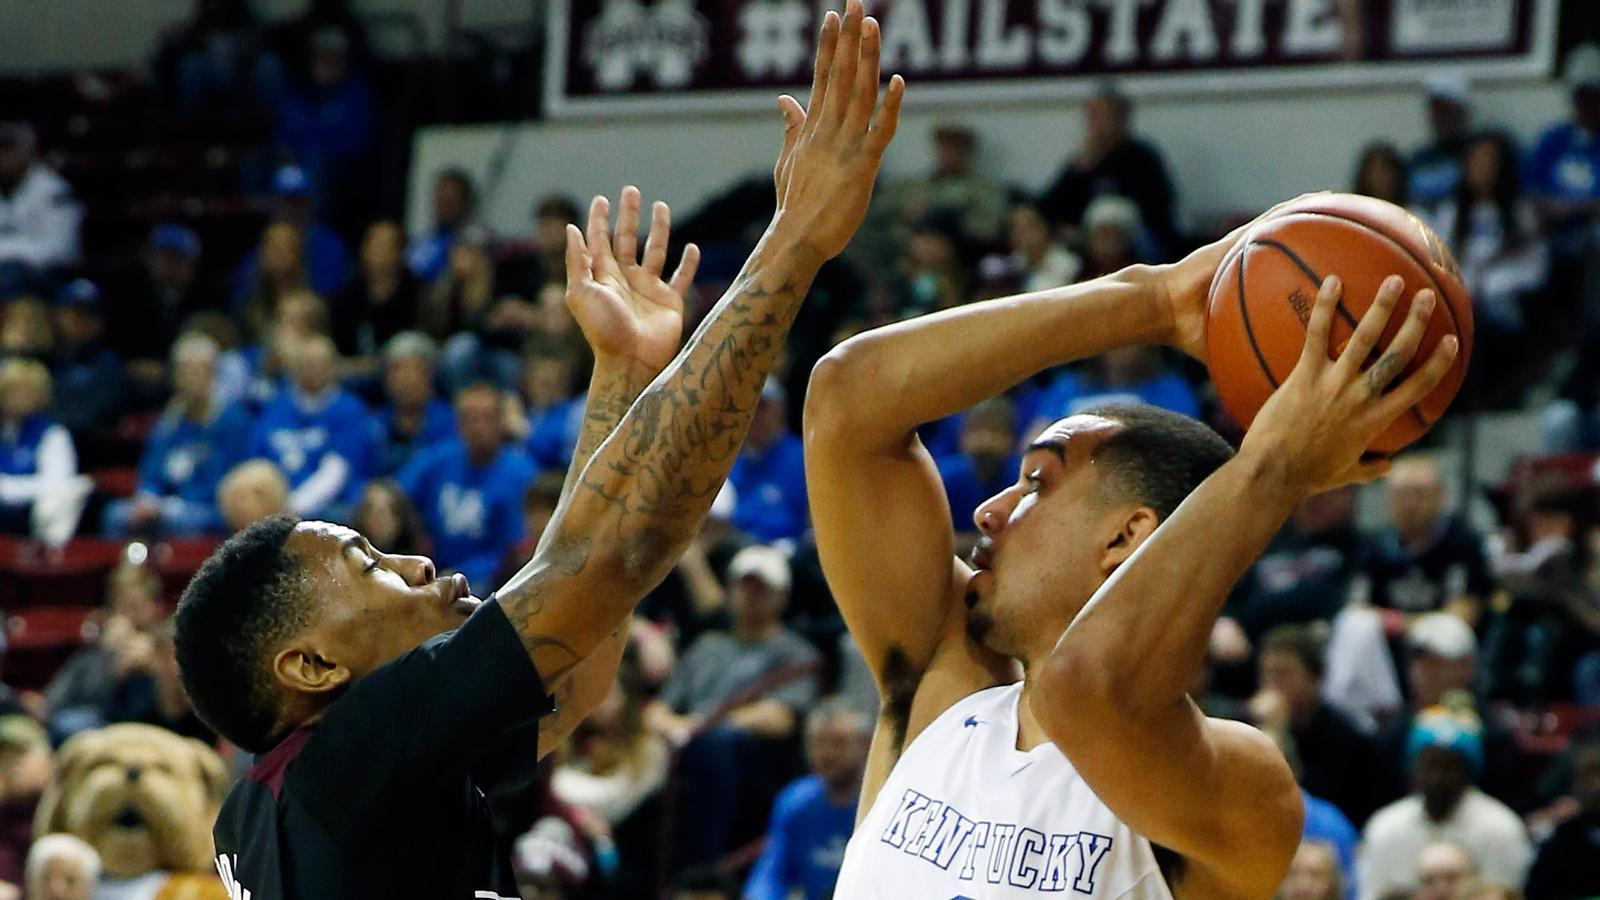 http://a.espncdn.com/media/motion/2015/0226/dm_150225_ncb_kentucky_mississippistate_highlight143/dm_150225_ncb_kentucky_mississippistate_highlight143.jpg